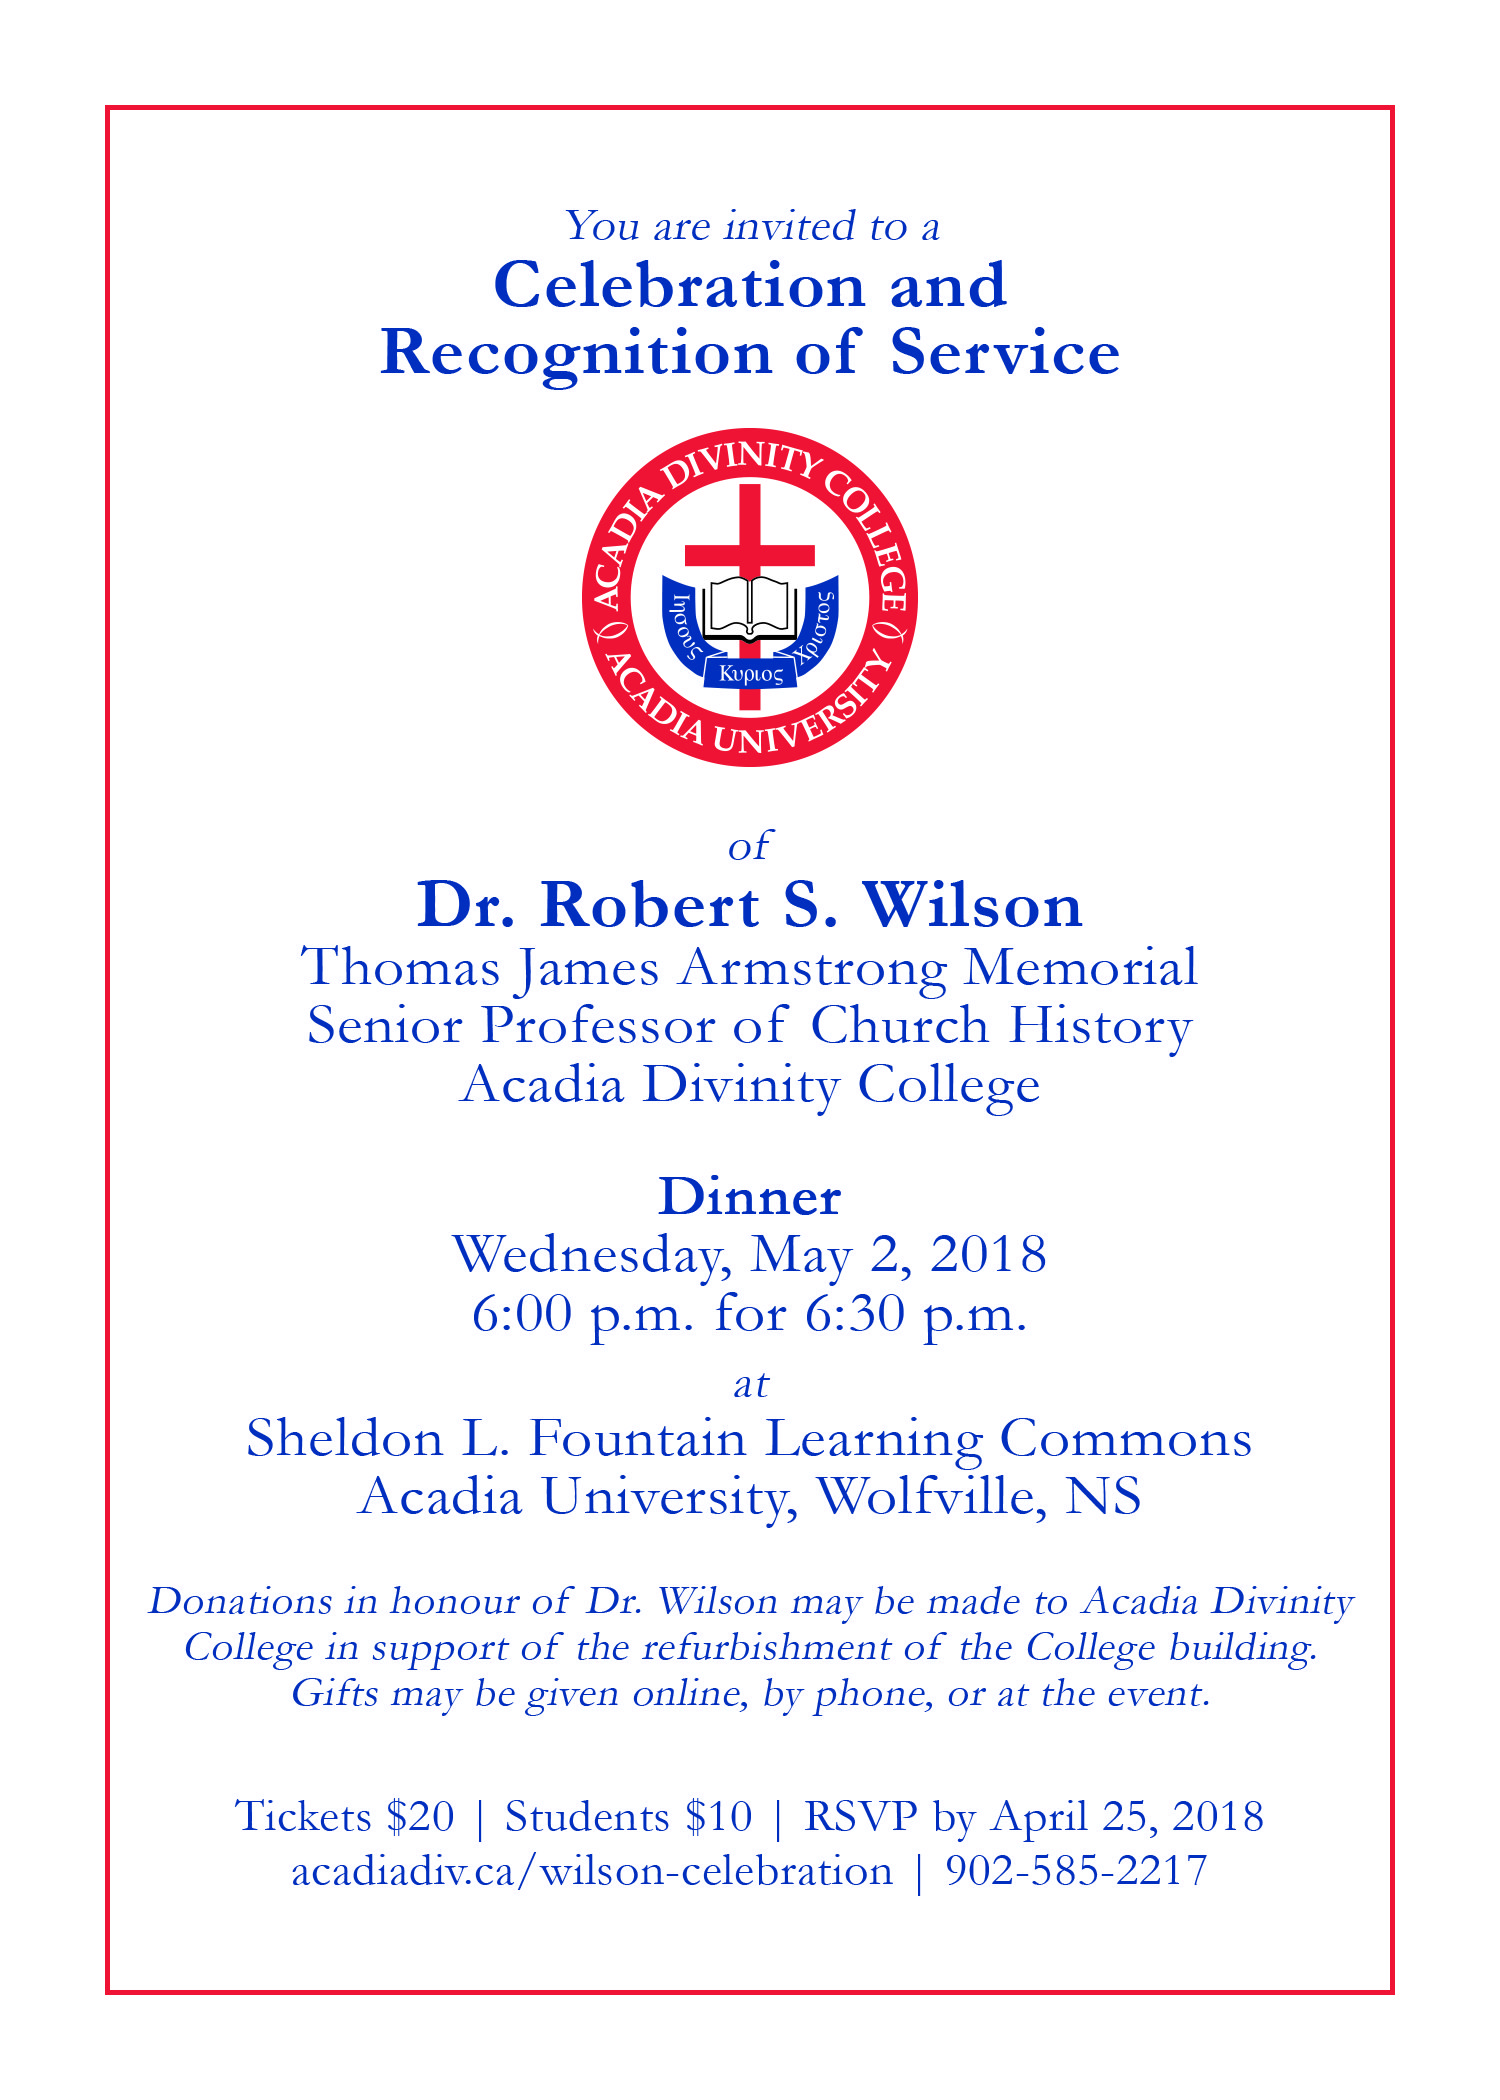 Celebrating Dr. Robert Wilson